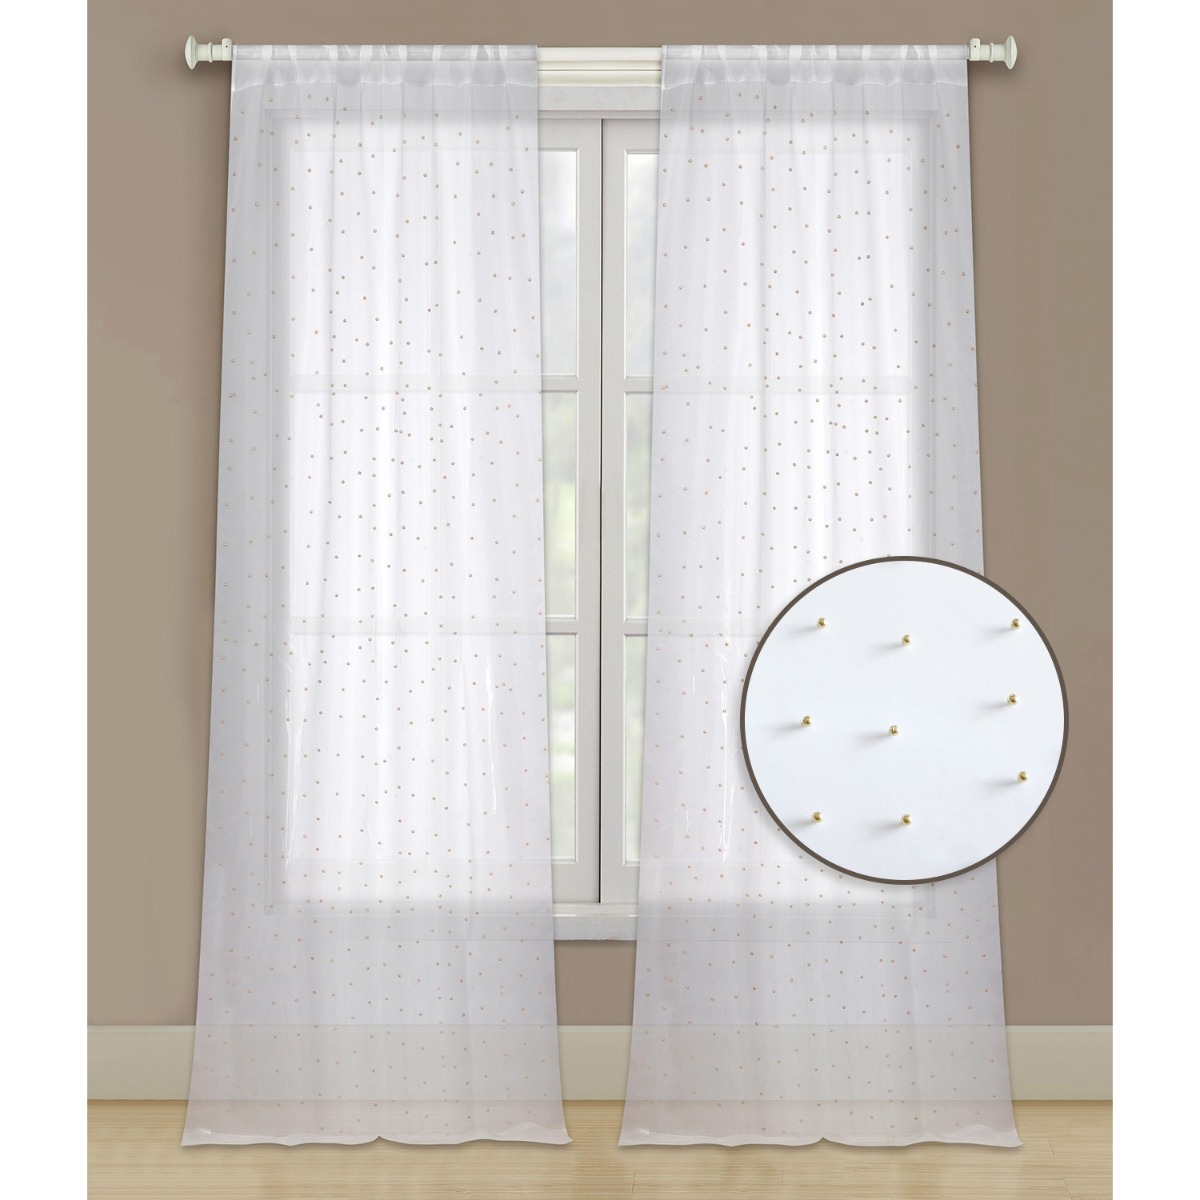 96 sheer 2 panel window curtains rod pocket drapes for bedroom living room and dining room white with gold beads